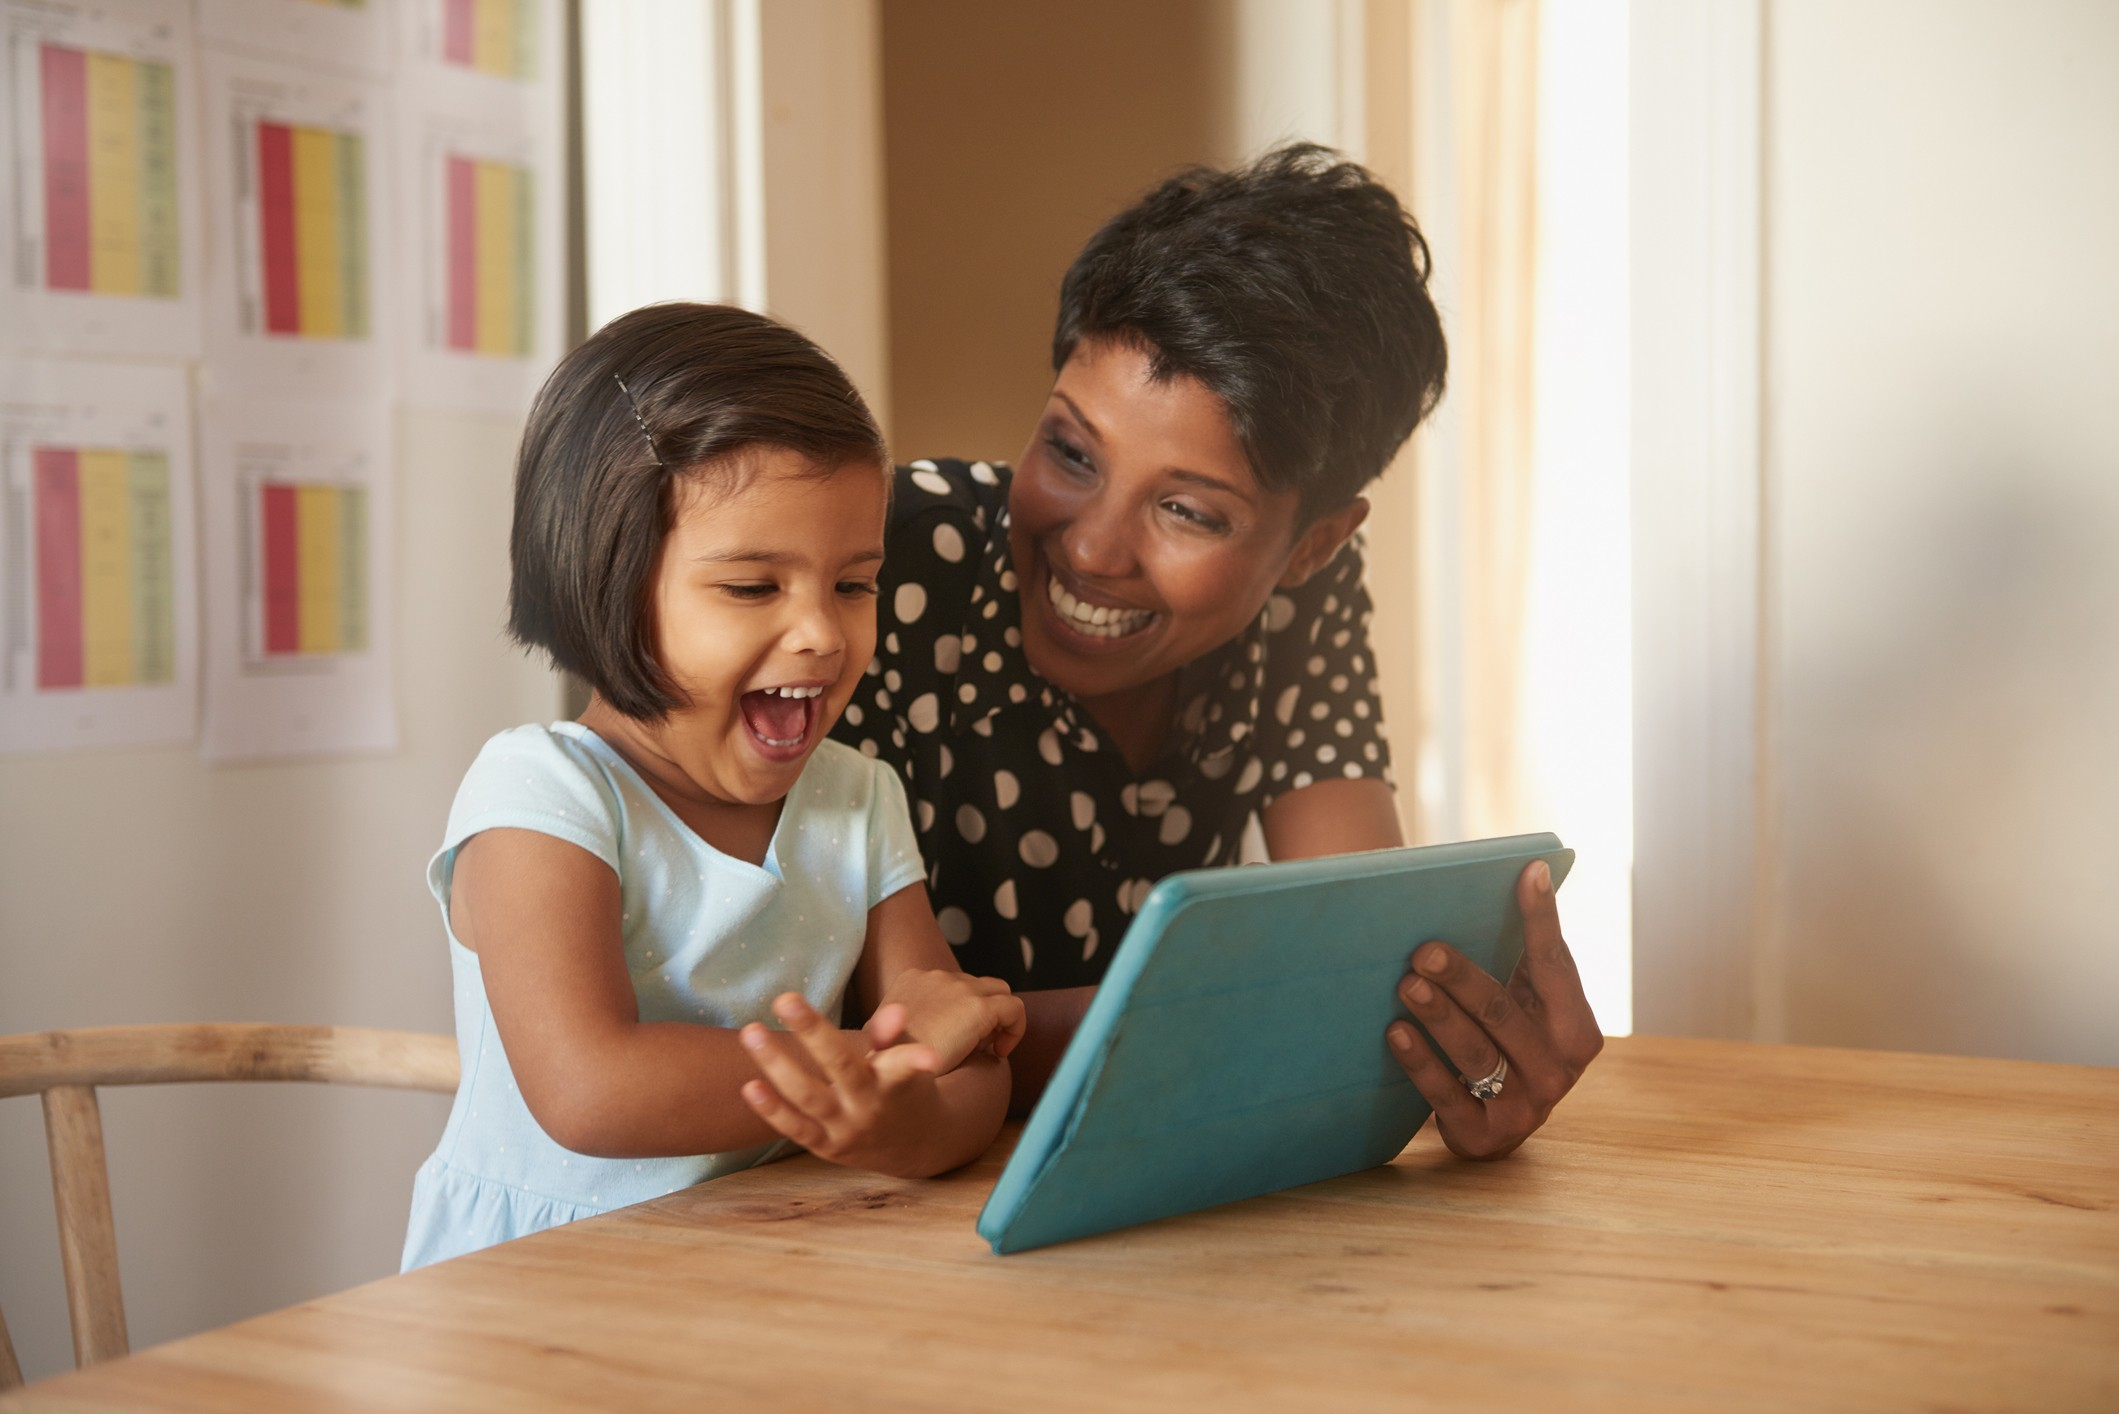 Excited child and parent on a tablet together.